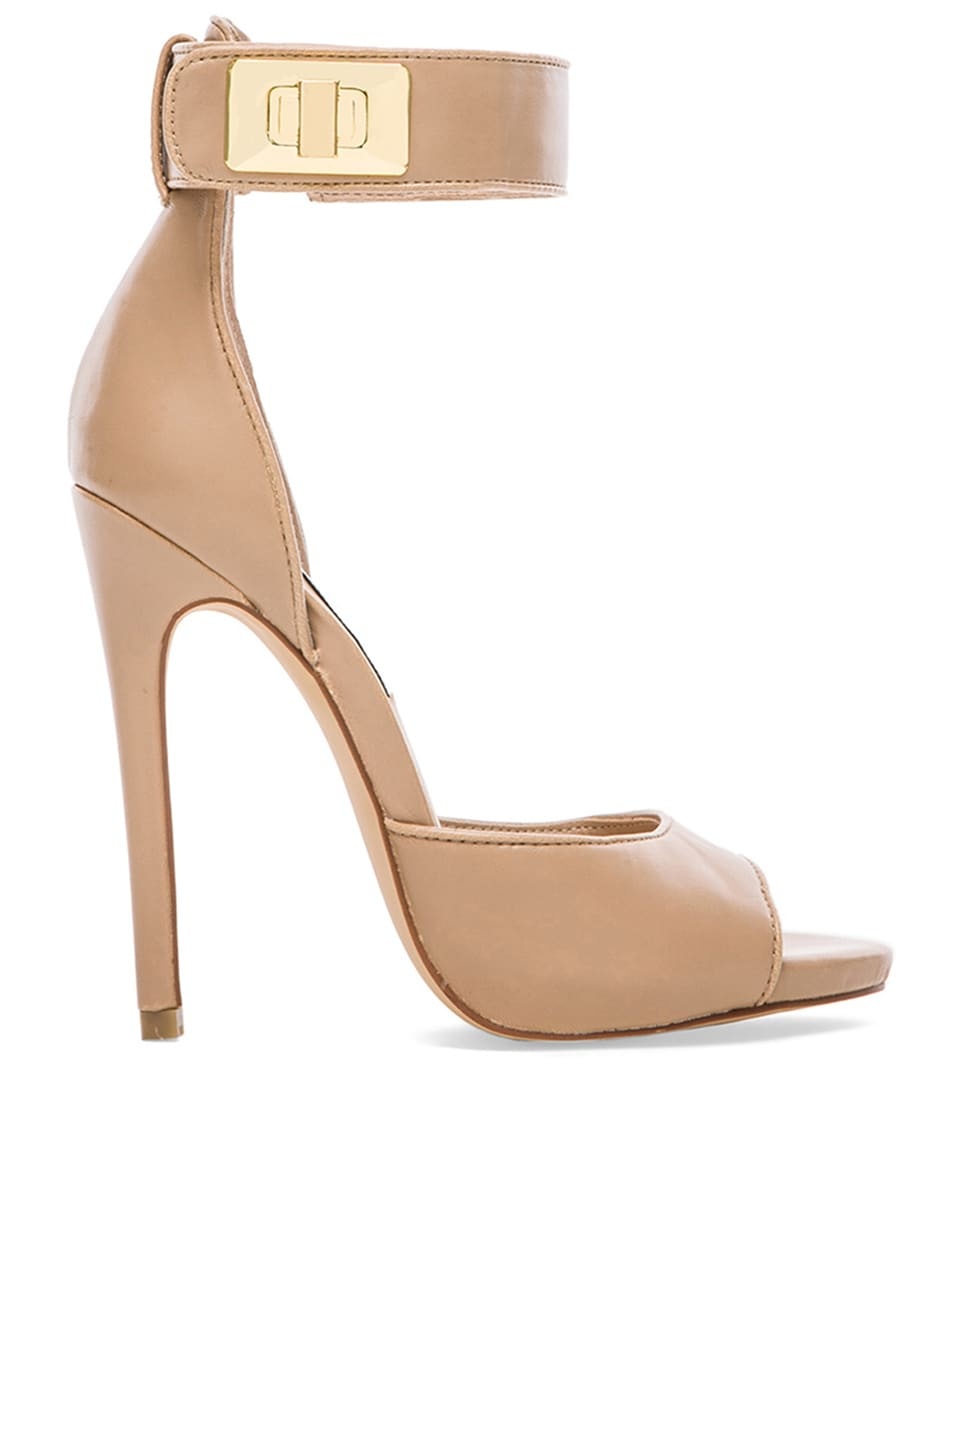 Steve Madden Mayven Heel in Blush Leather